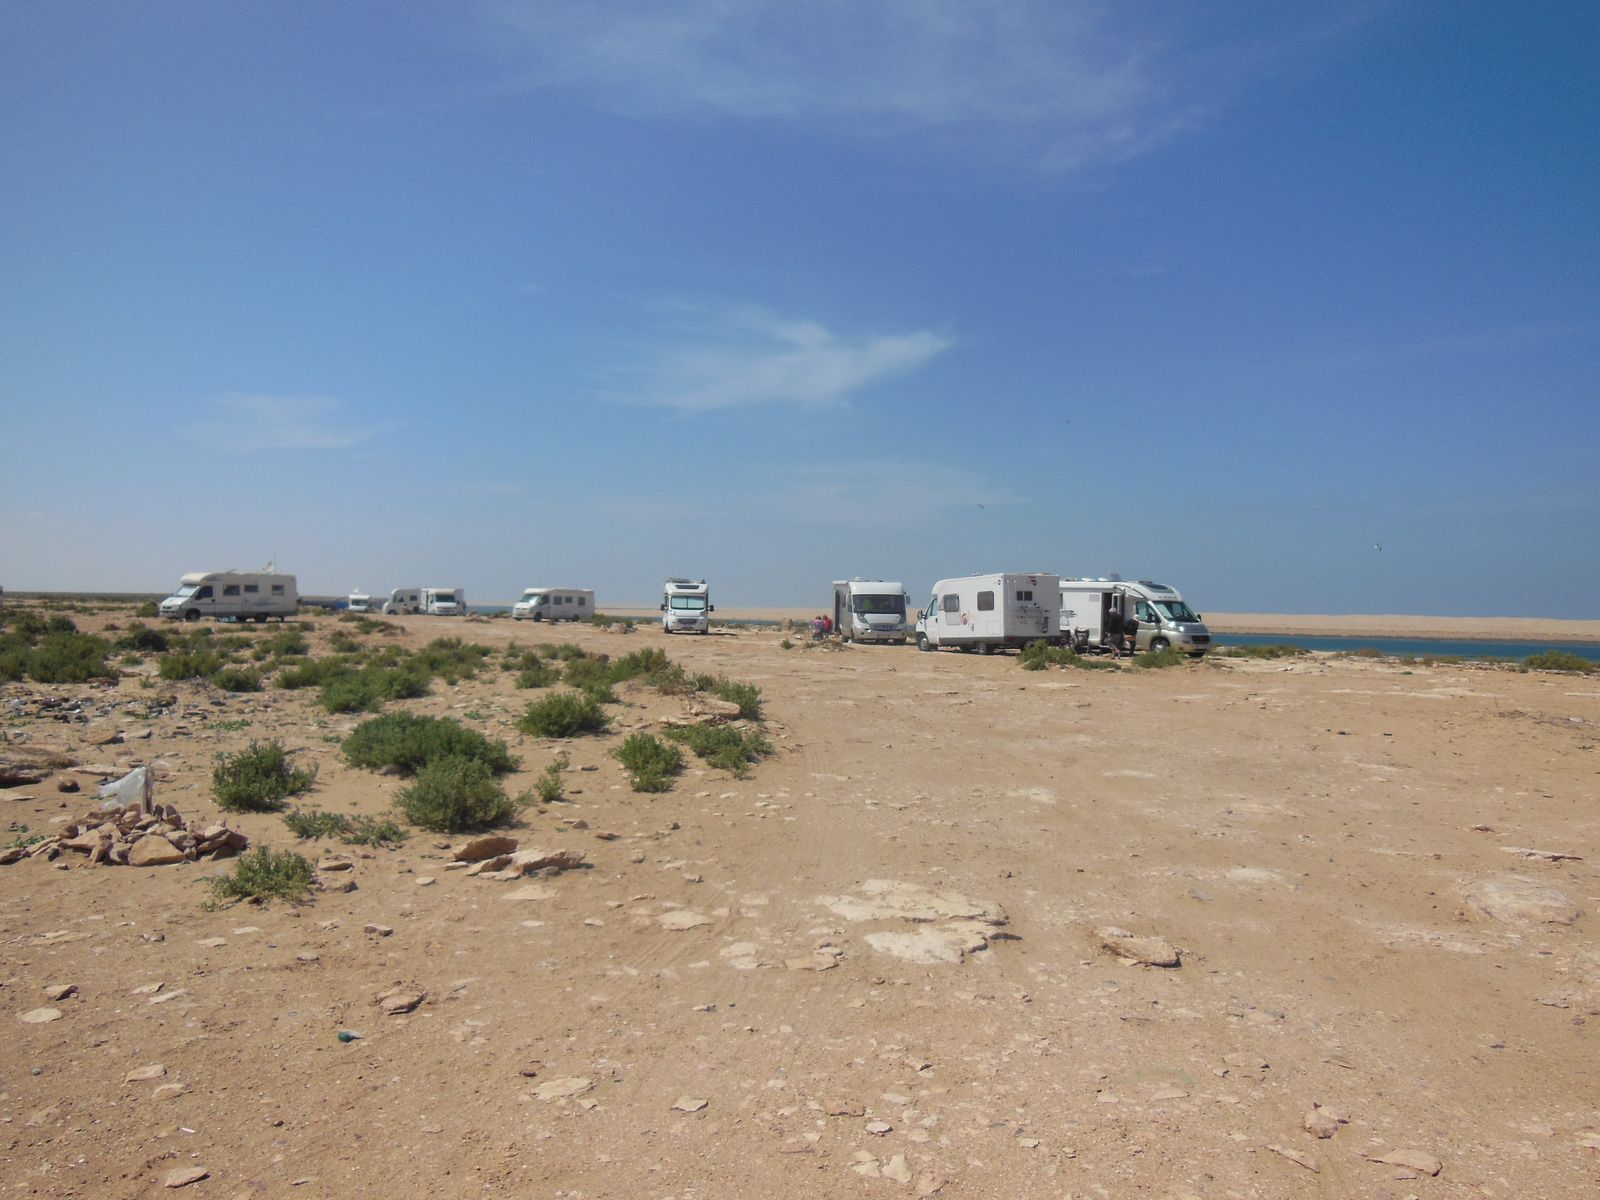 2eme photo les campings car vu de la lagune